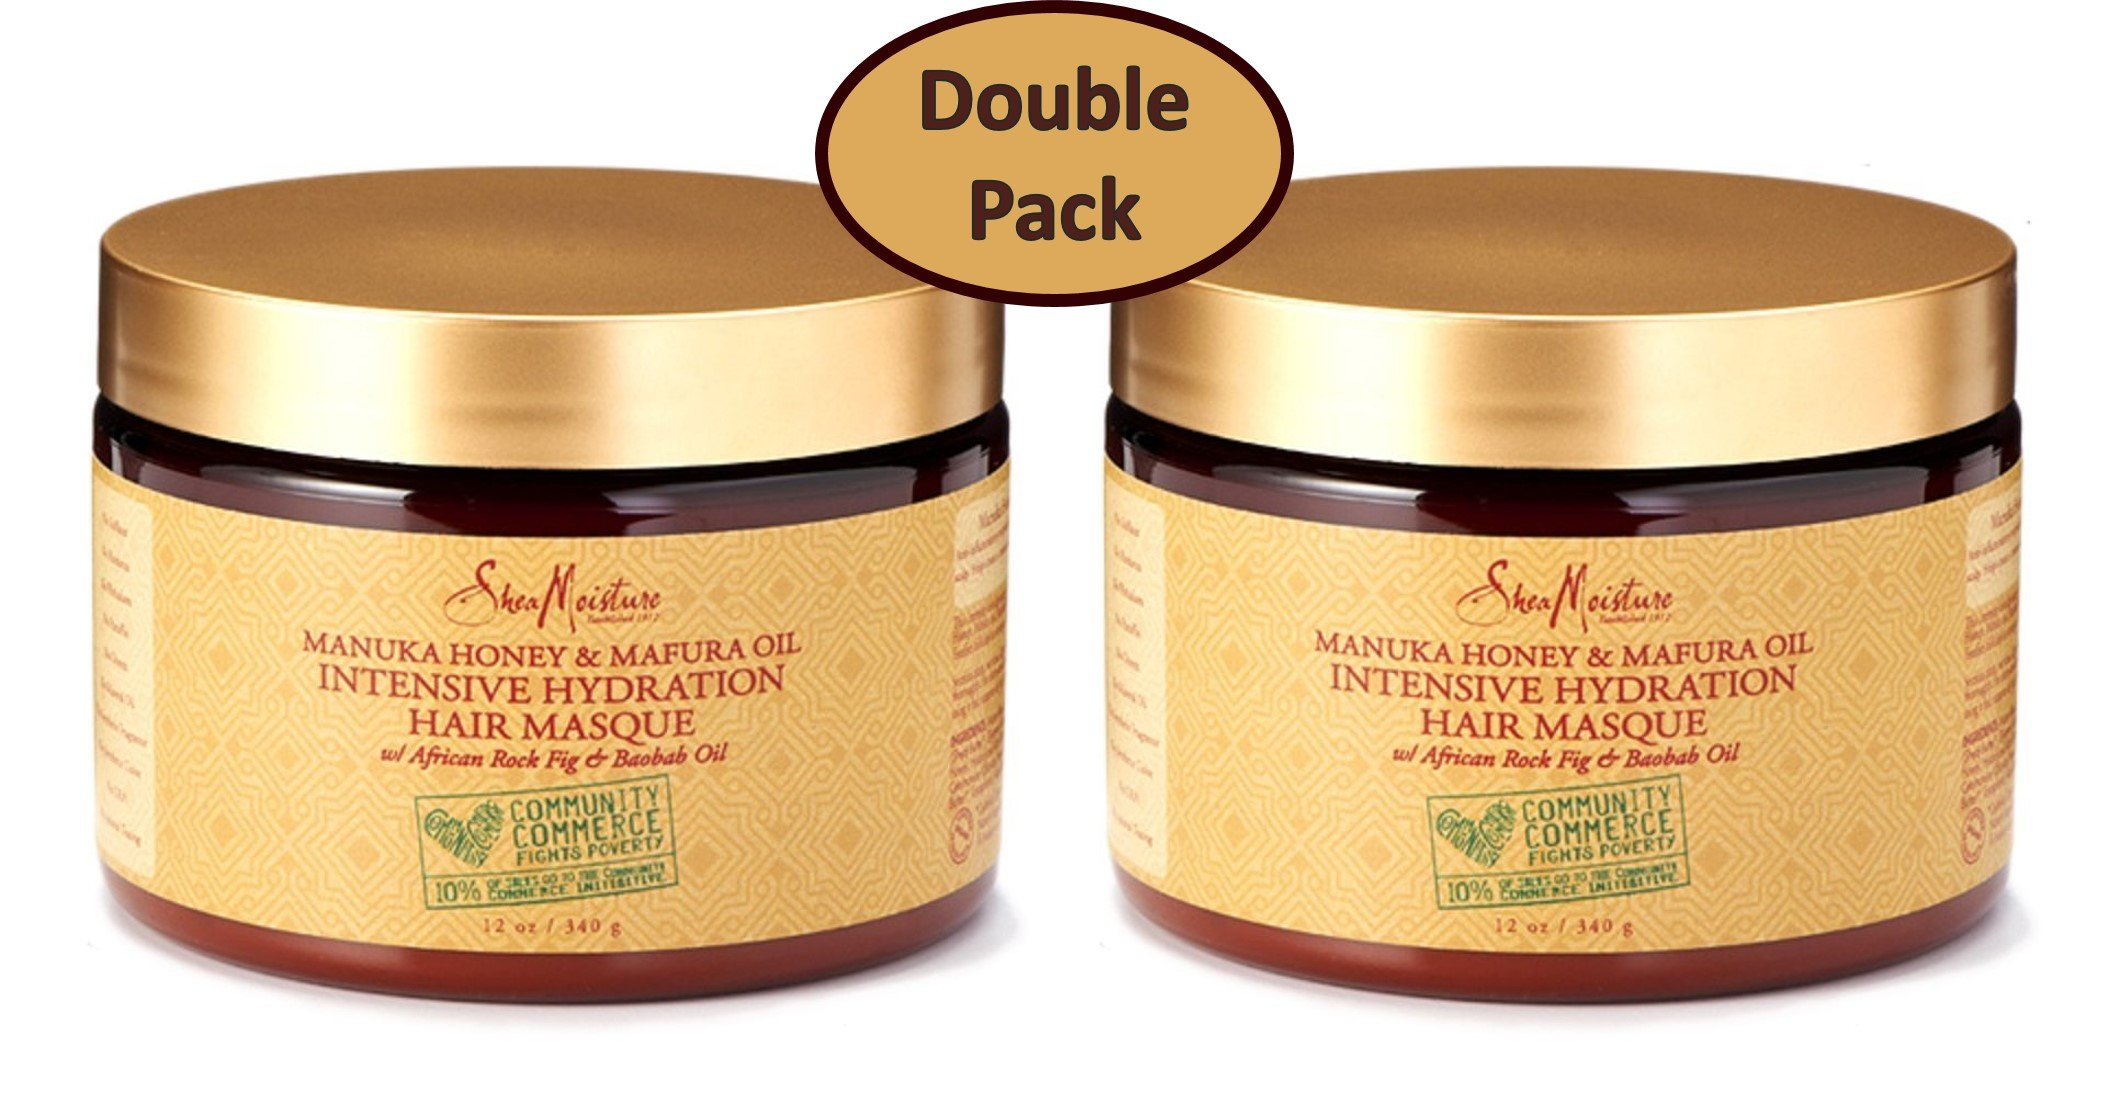 Shea Moisture Manuka Honey & Mafura Oil Intensive Hydration Hair Masque, with African Rock Fig & Baobab Oil, 12 Ounce - Value Double Pack - Qty of 2 each by Shea Moisture